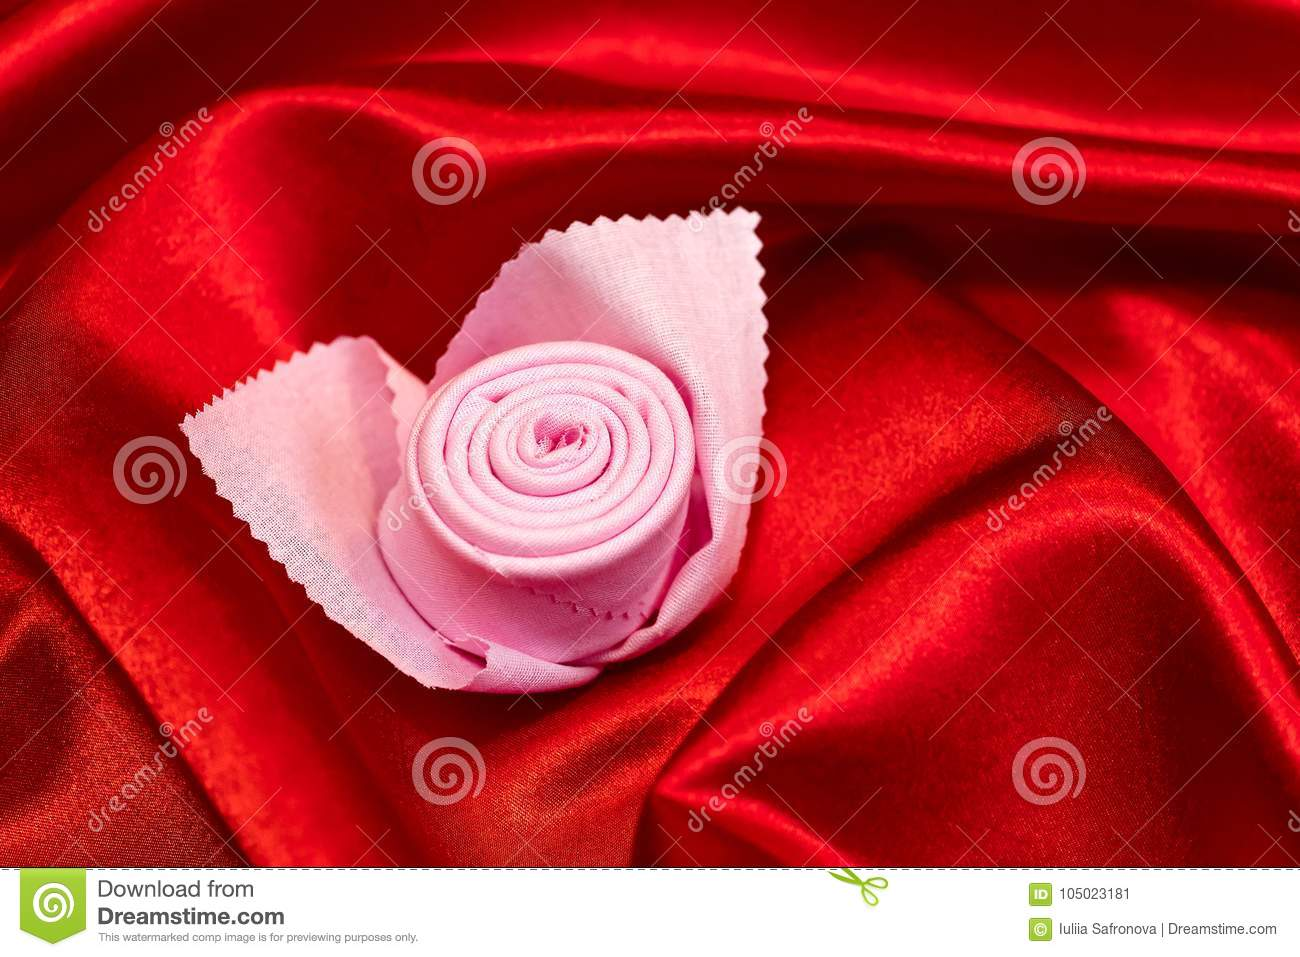 Napkin Folded In The Form Of A Pink Flower On A Red Cloth Stock Image Image Of Passion Folded 105023181